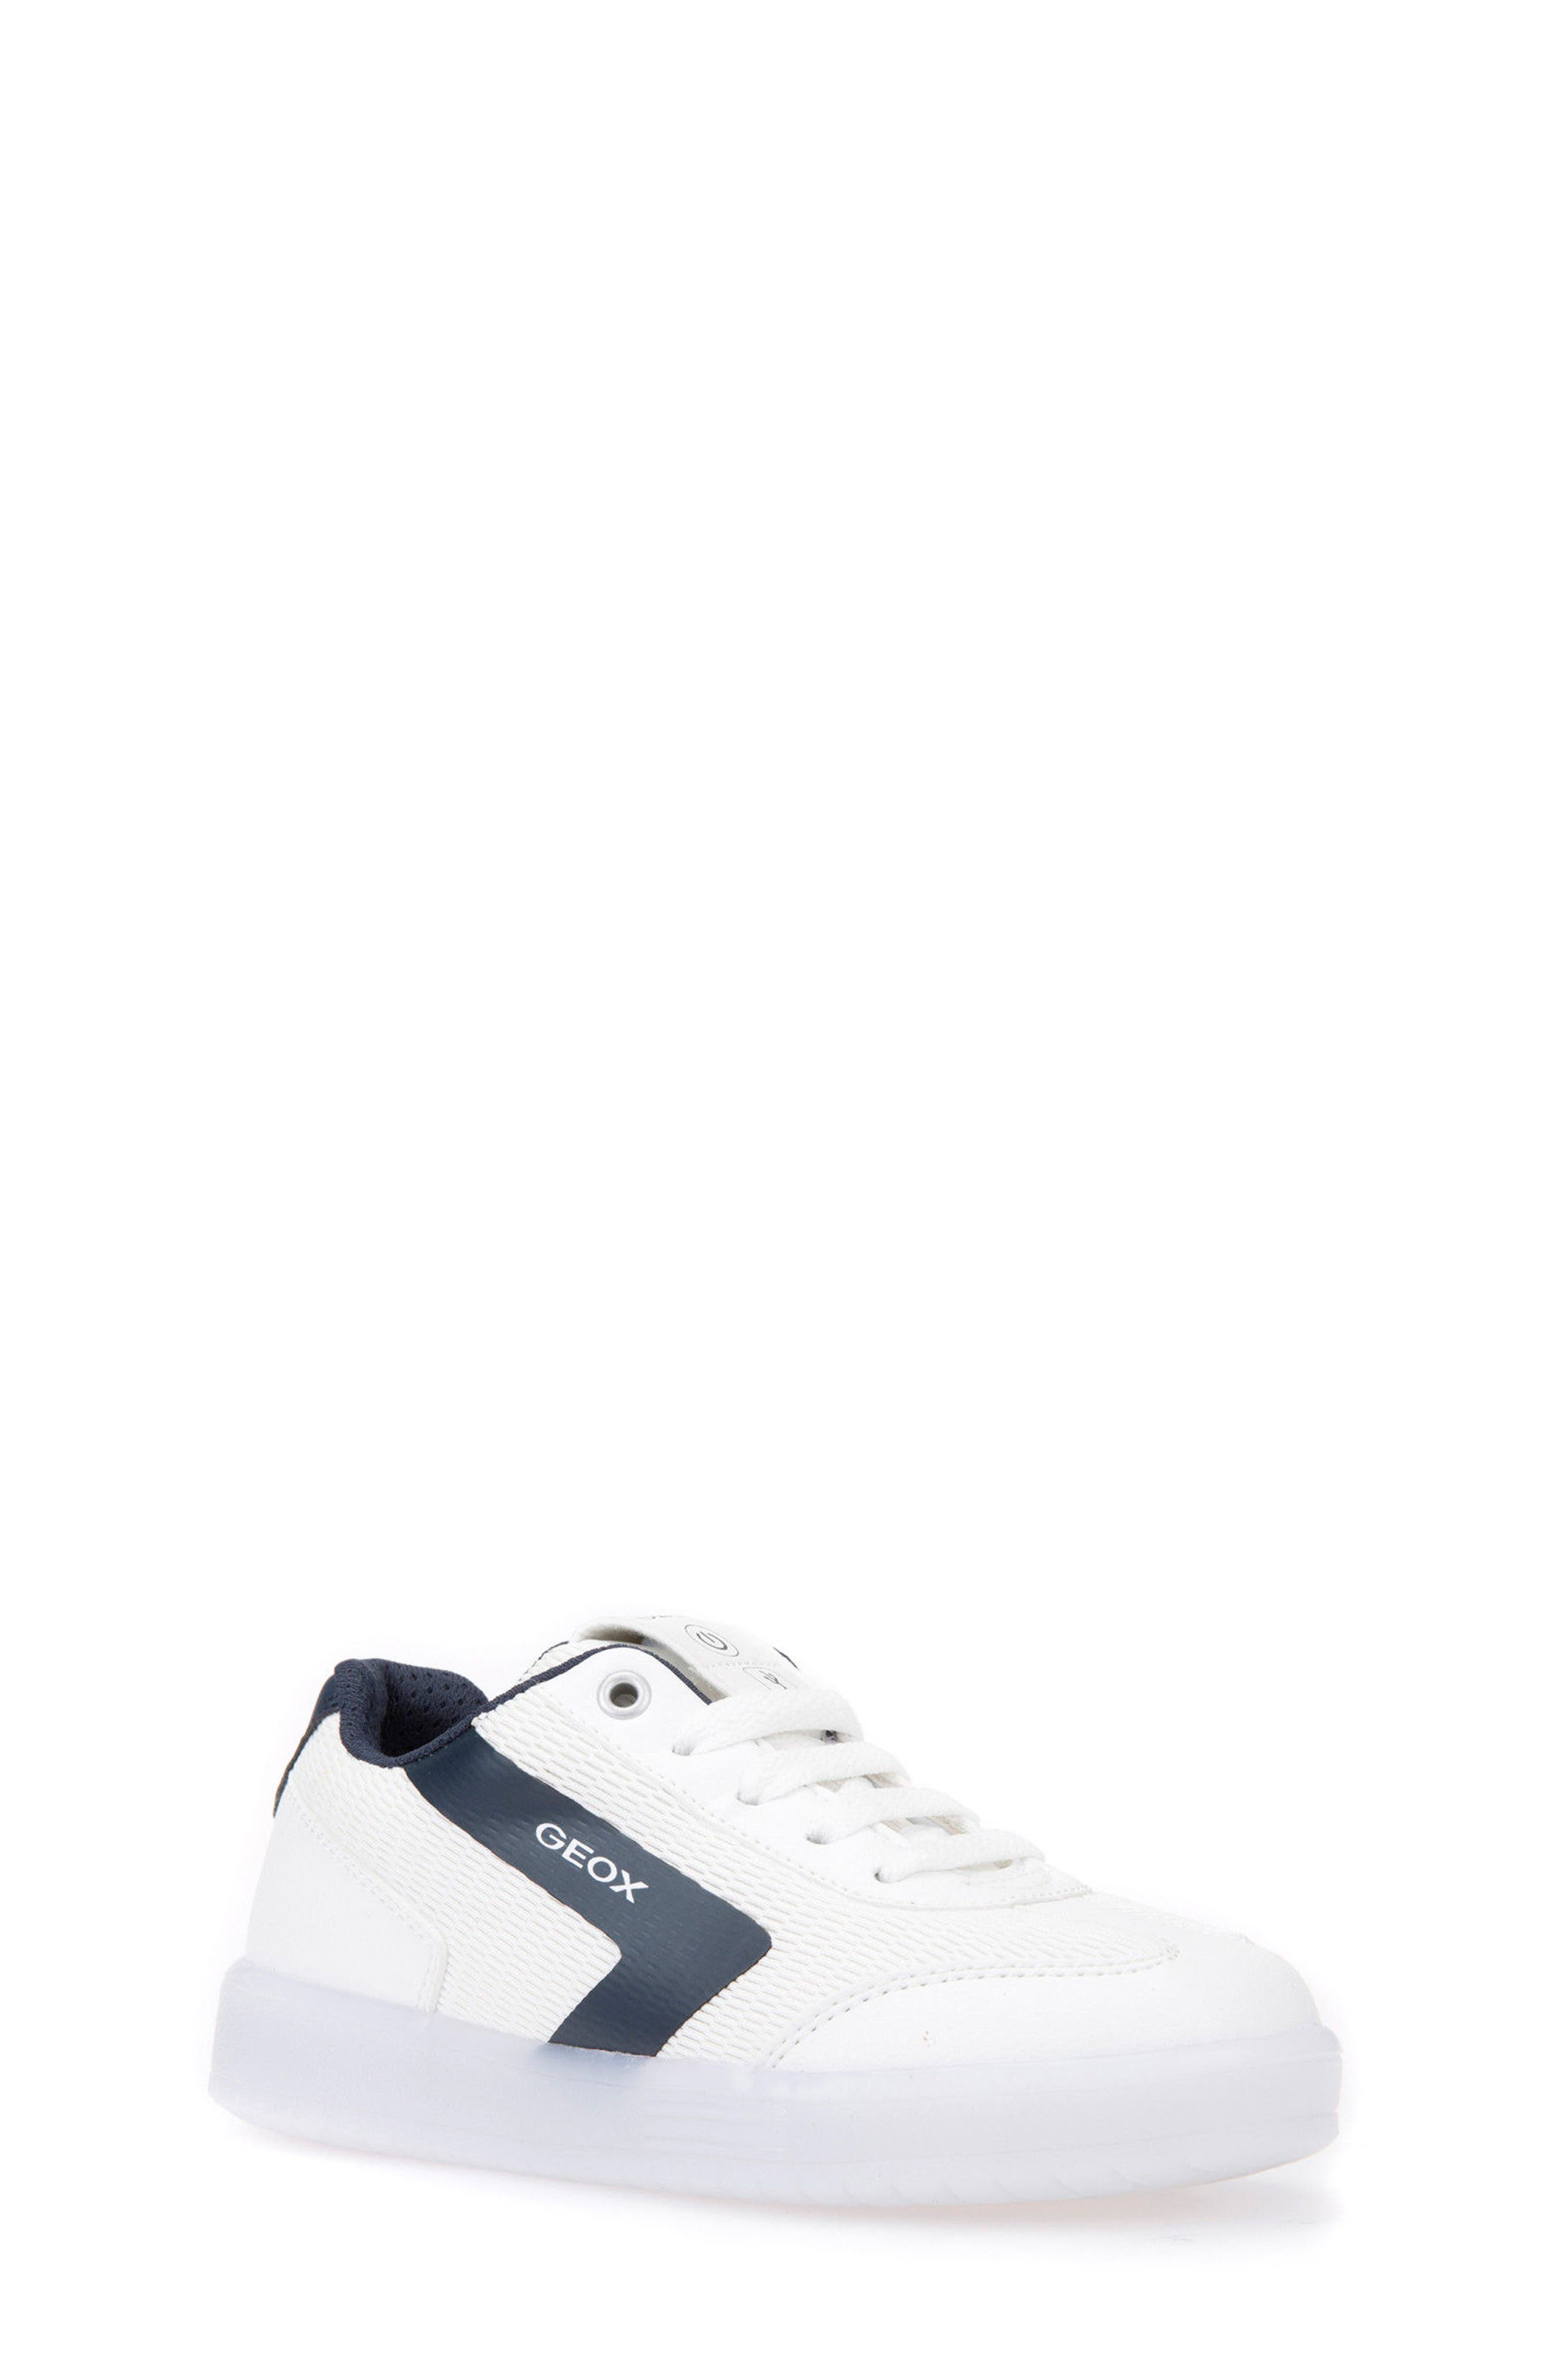 Kommodor Light-Up Low Top Sneaker,                         Main,                         color, WHITE/ NAVY